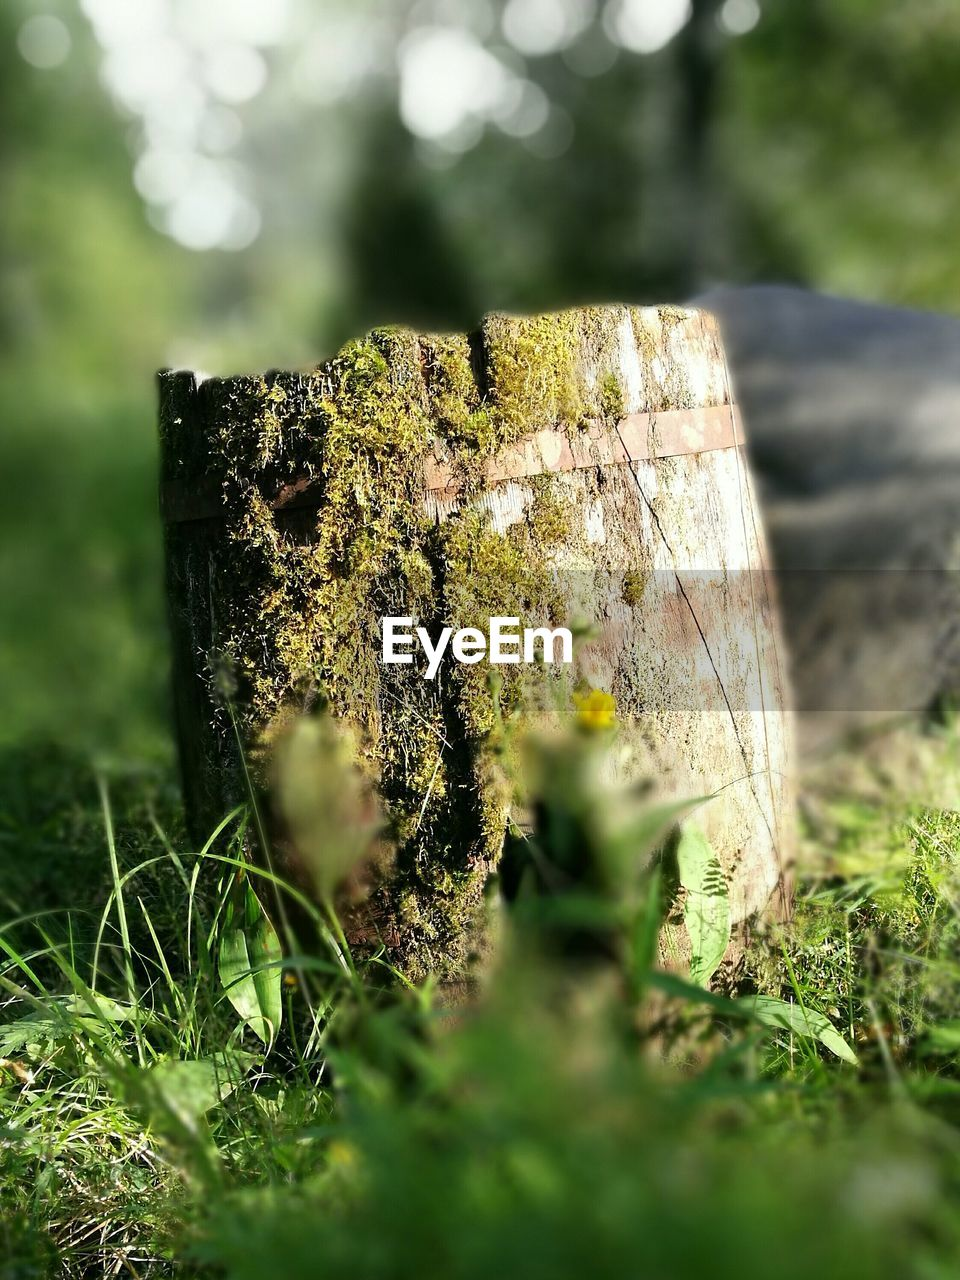 nature, selective focus, tree stump, day, outdoors, moss, no people, close-up, log, wood - material, beauty in nature, grass, axe